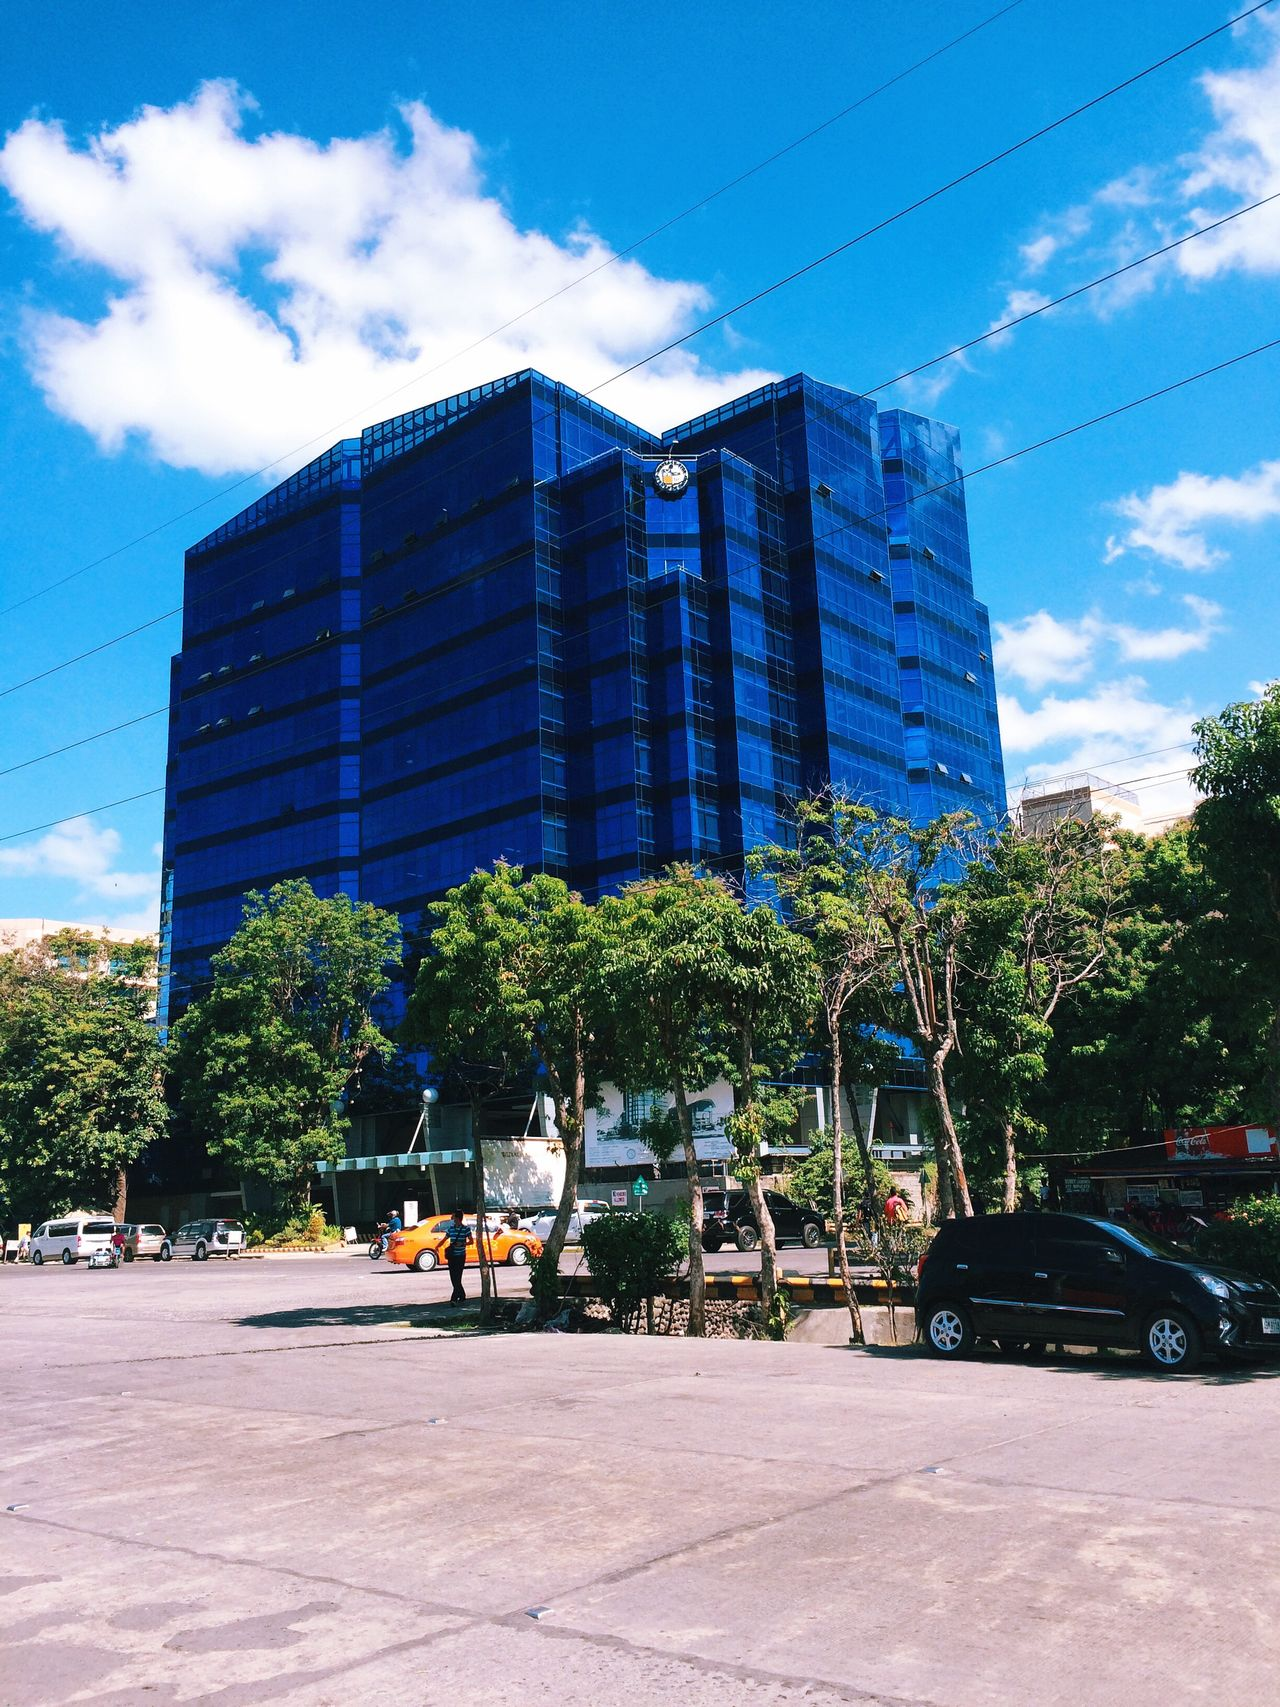 The Color Of School Blue Blue Sky Ateneo Architecture Built Structure Building Exterior Tree City Road Transportation Office Building Car Street Tall - High Ateneo De Davao Cloud - Sky Outdoors Cloud University TakeoverContrast